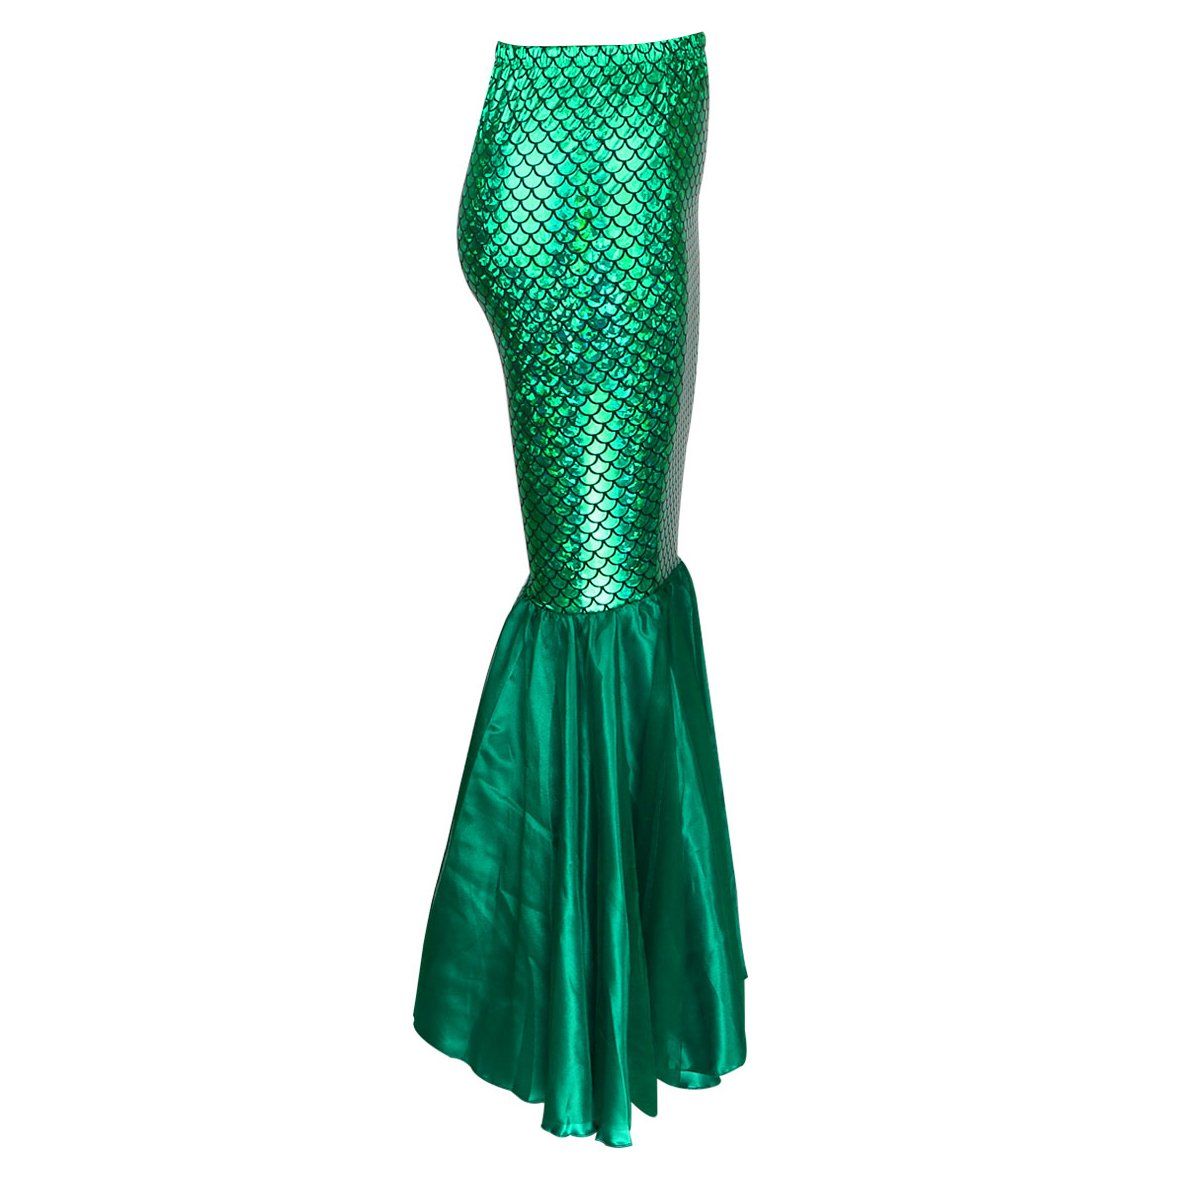 JNTworld Sexy Green Mermaid Ladies Dress Womens Adults Costume Outfit for Party,S,Green: Amazon.co.uk: Clothing